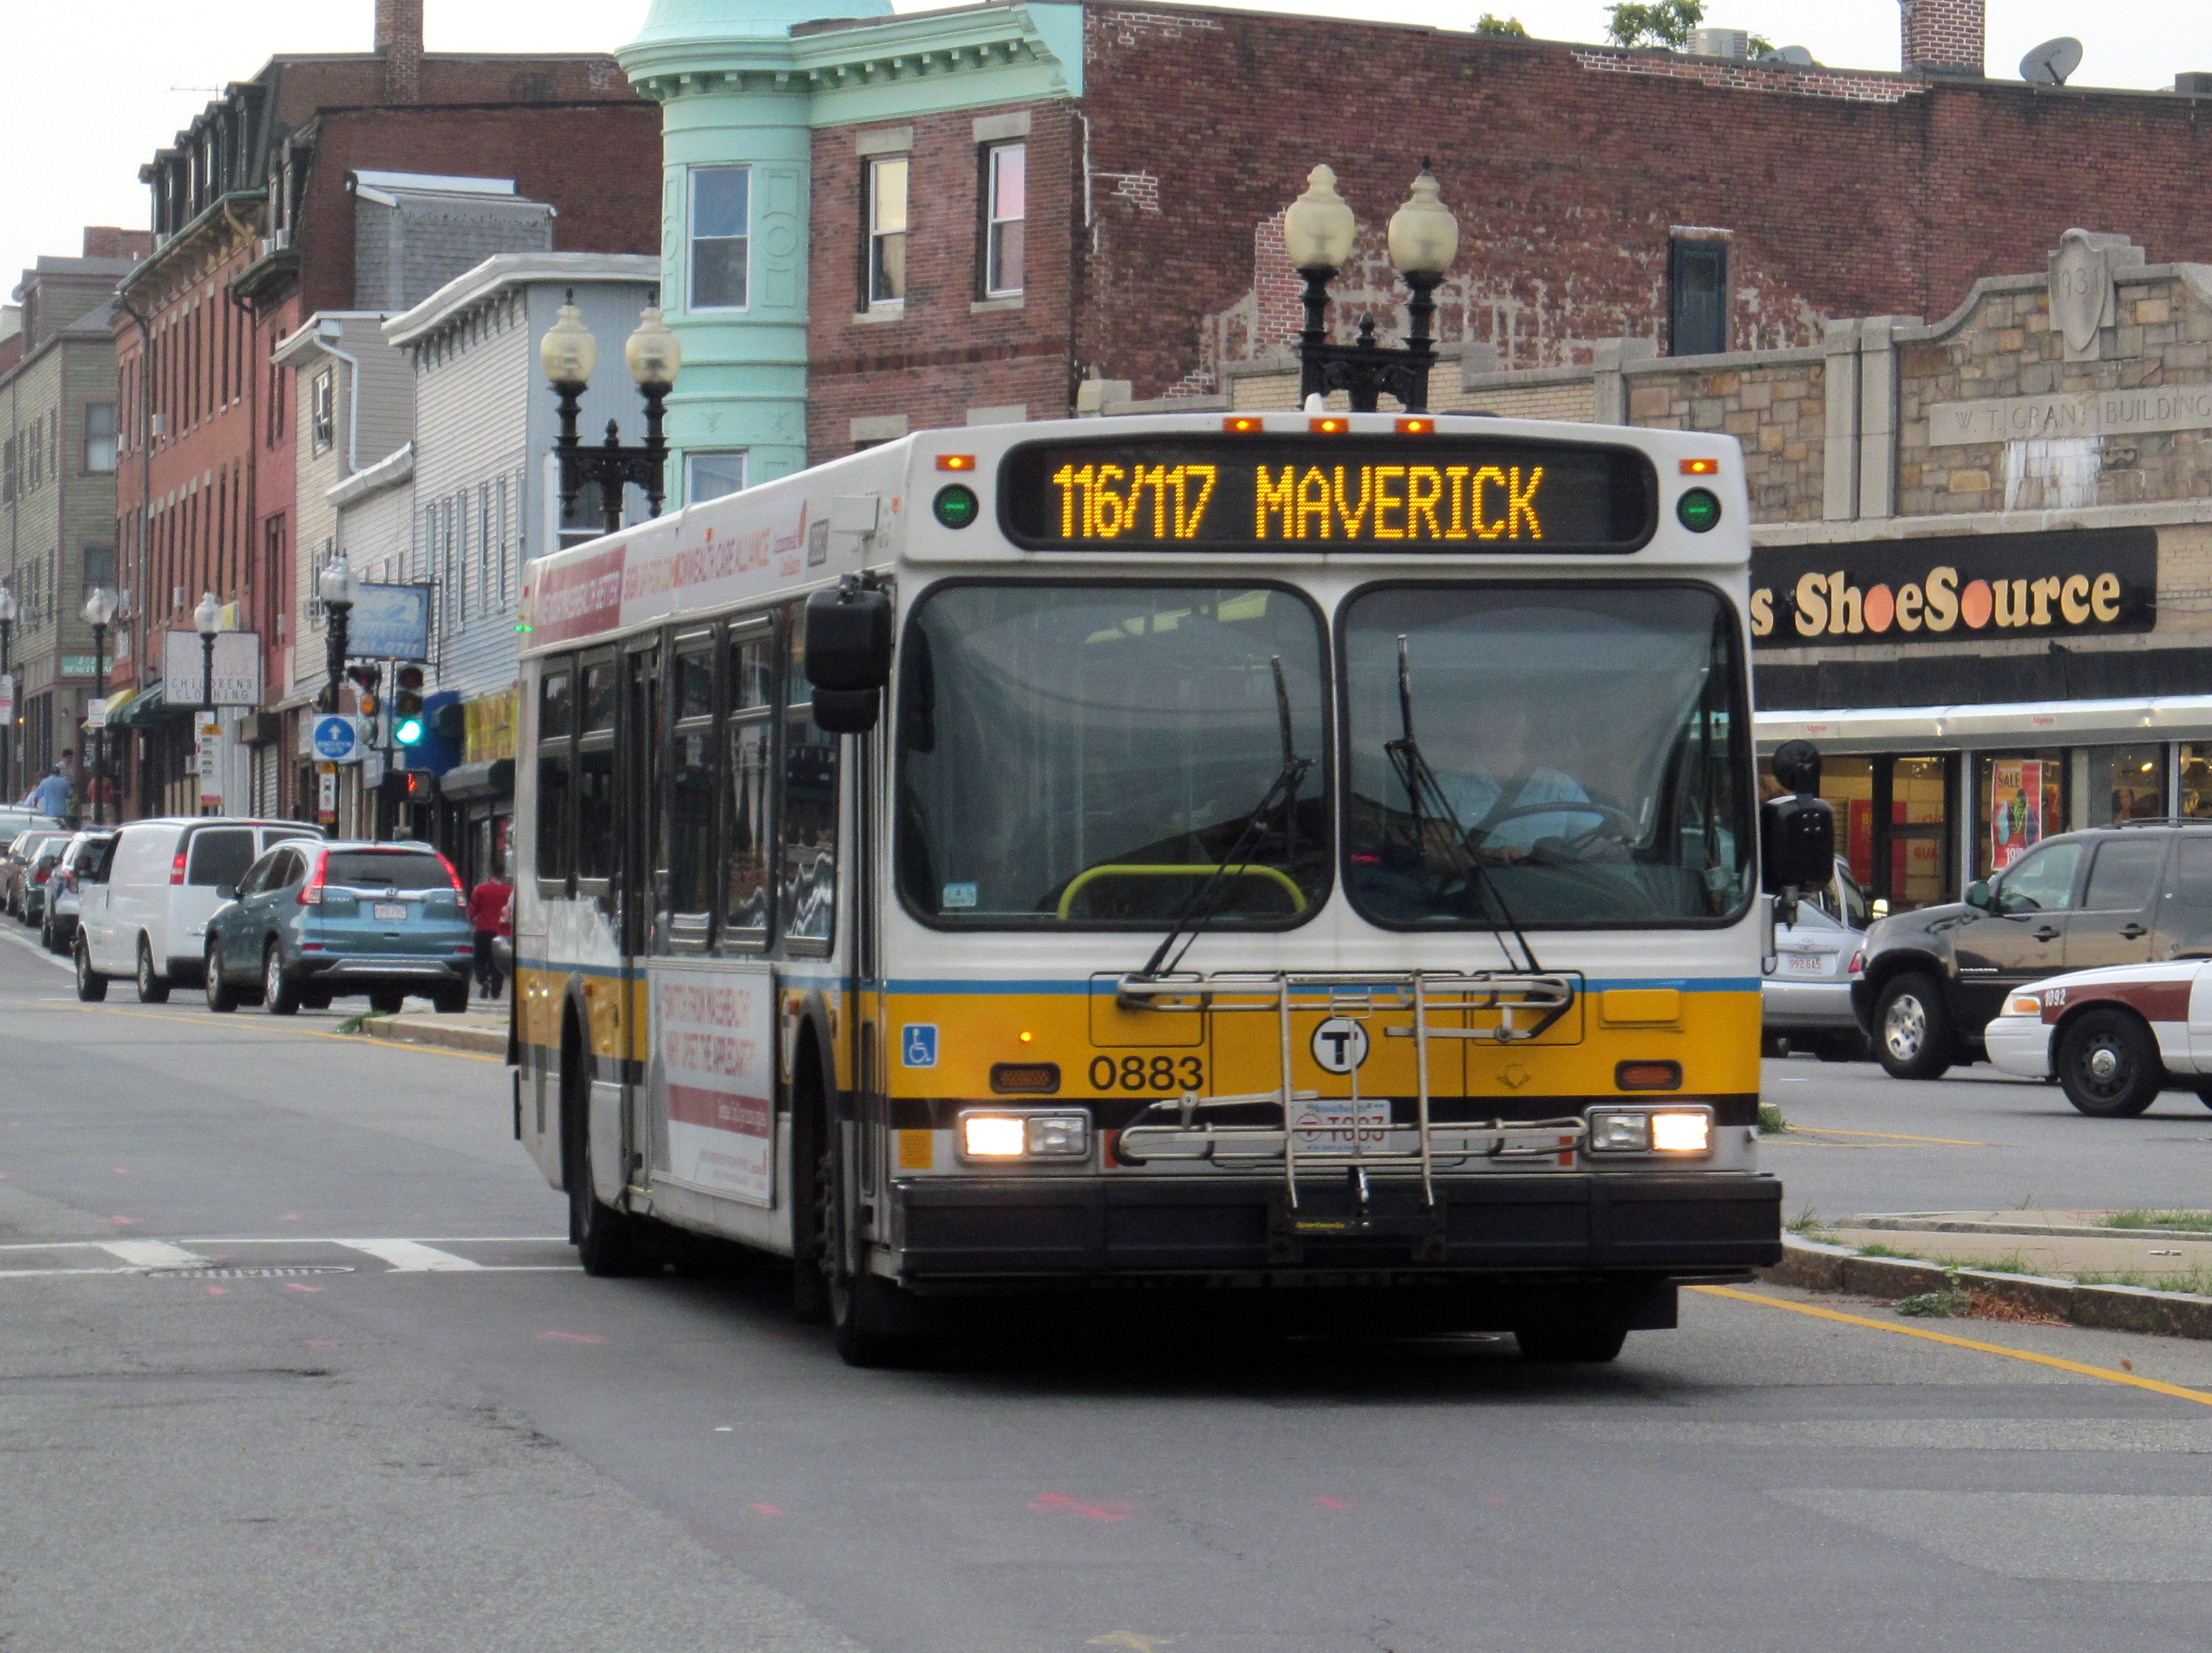 file:mbta route 116-117 bus on meridian street, august 2015